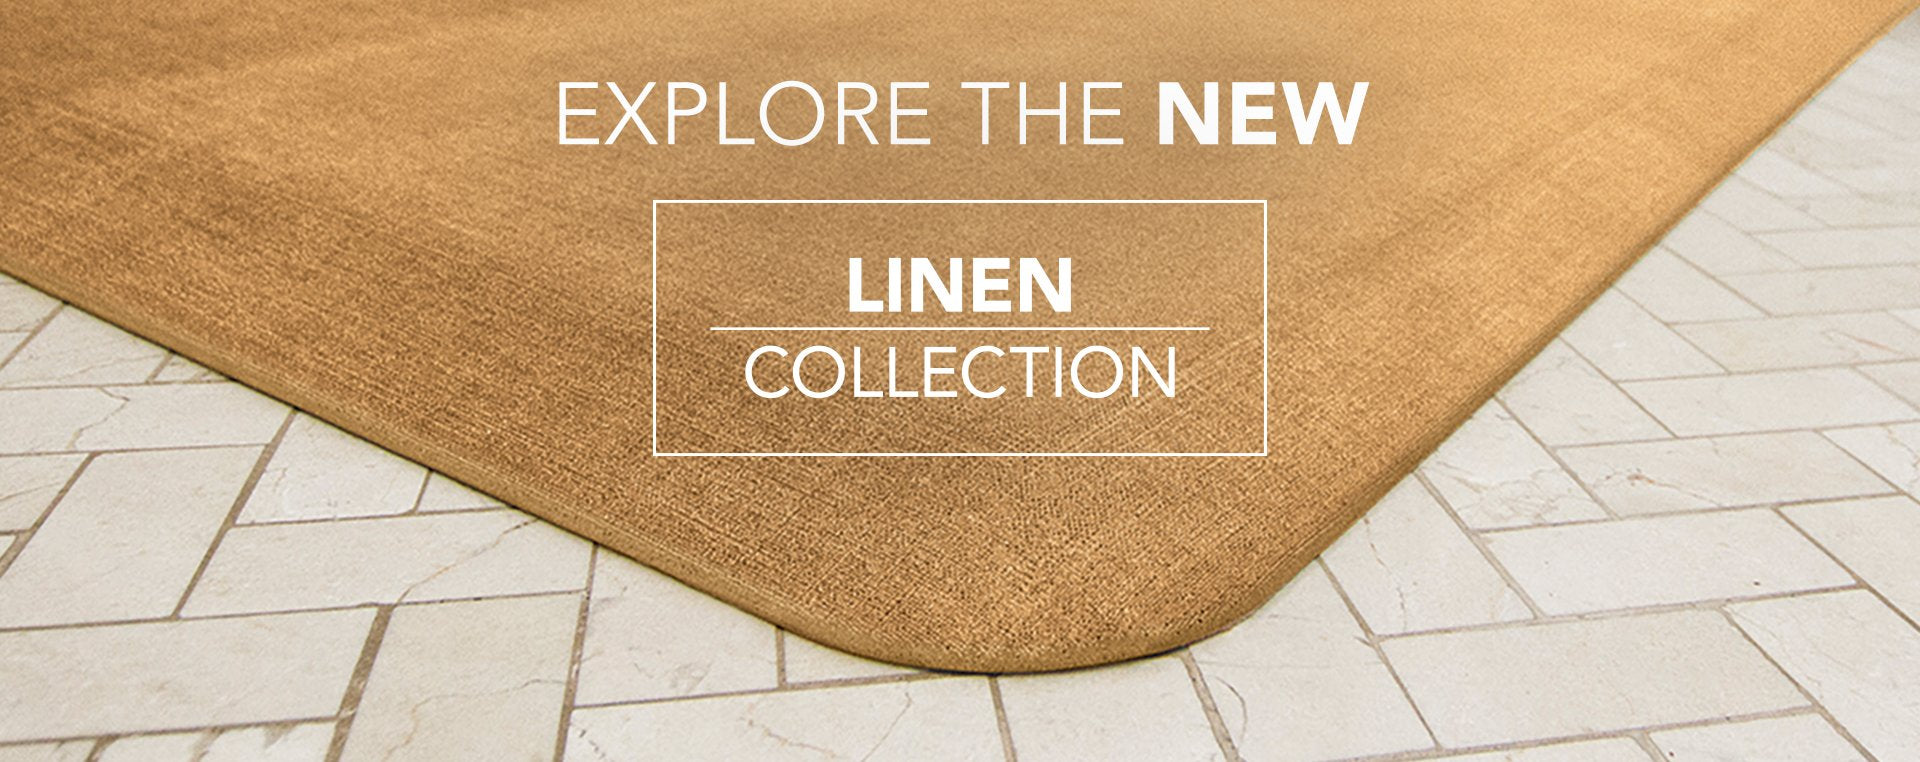 Explore the NEW Linen Collection